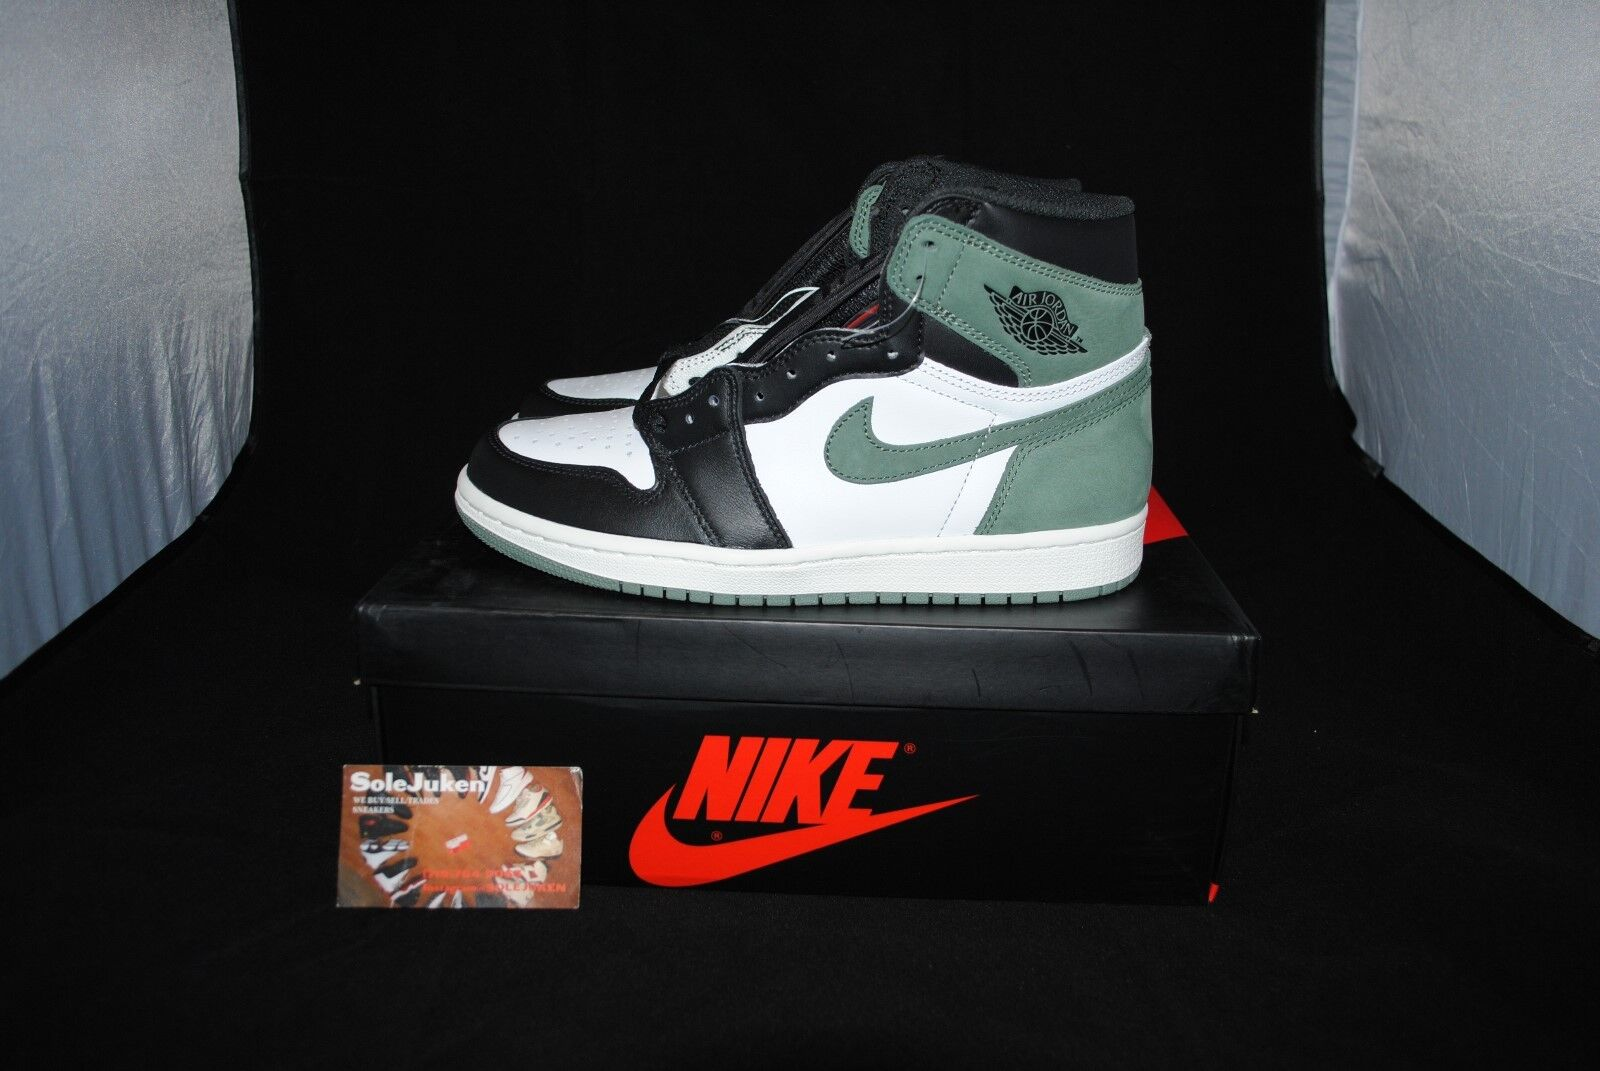 Nike Air Jordan 1 Retro One OG High 2018